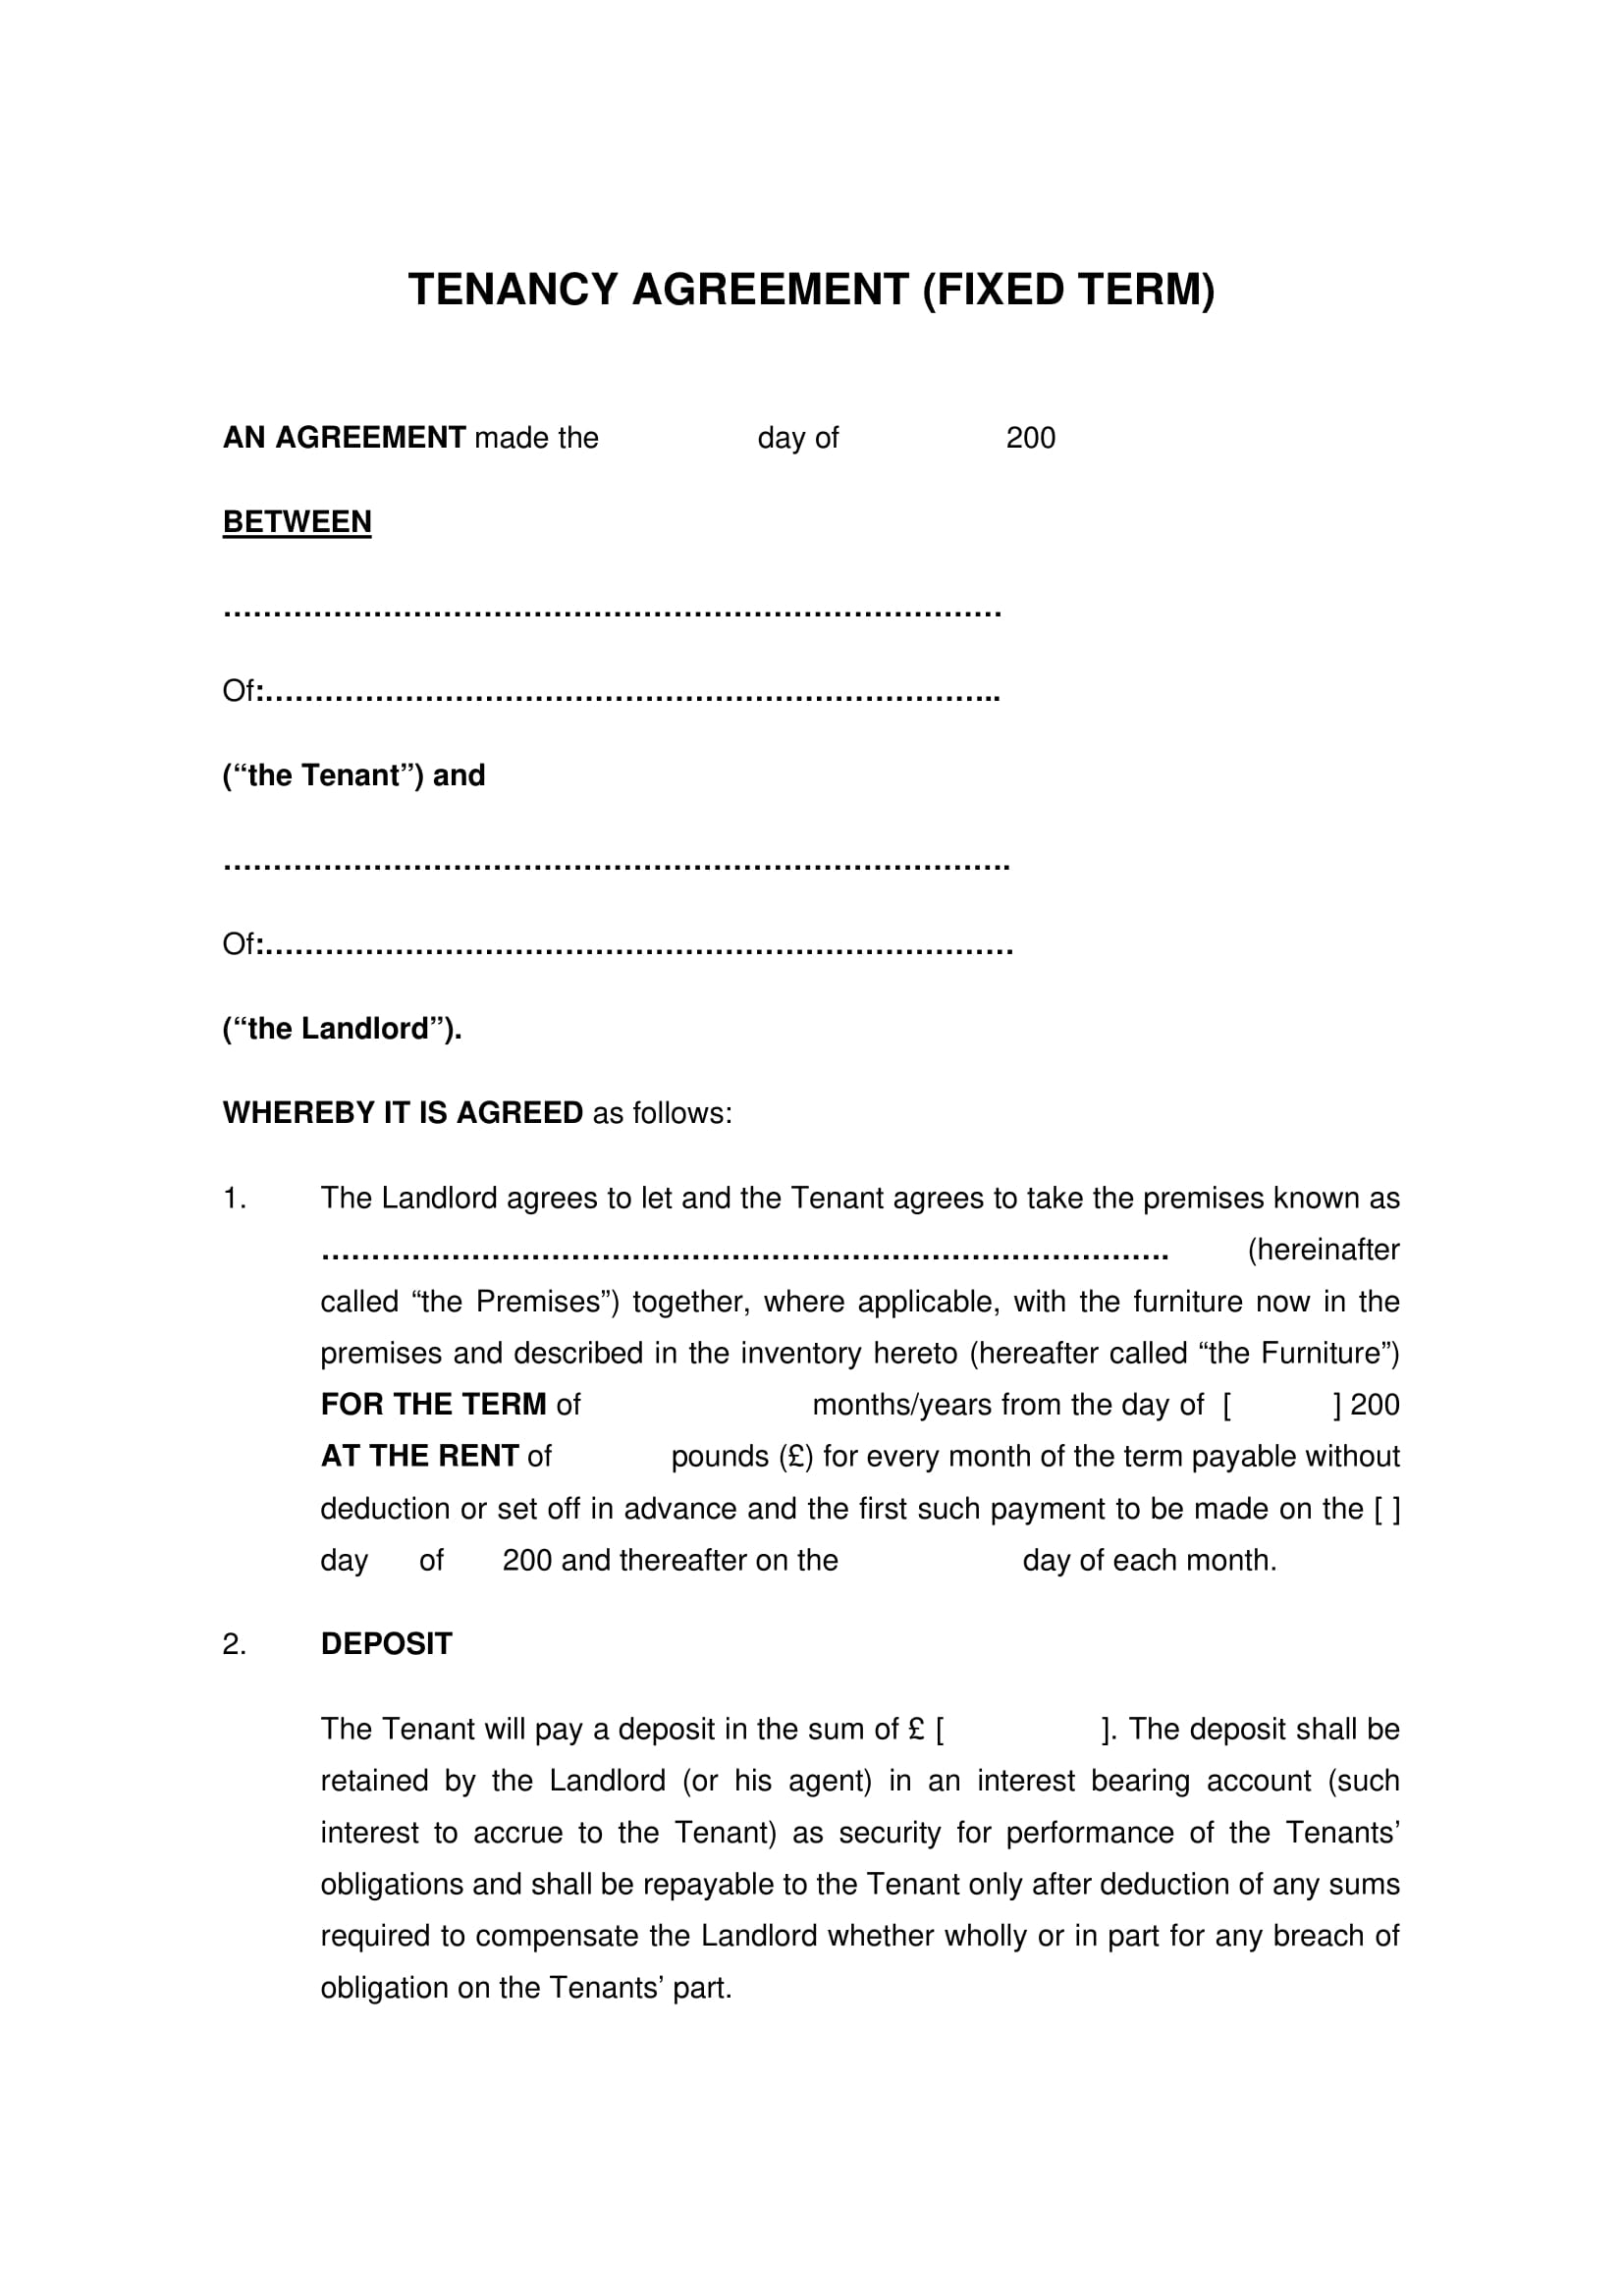 fixed term tenancy agreement example